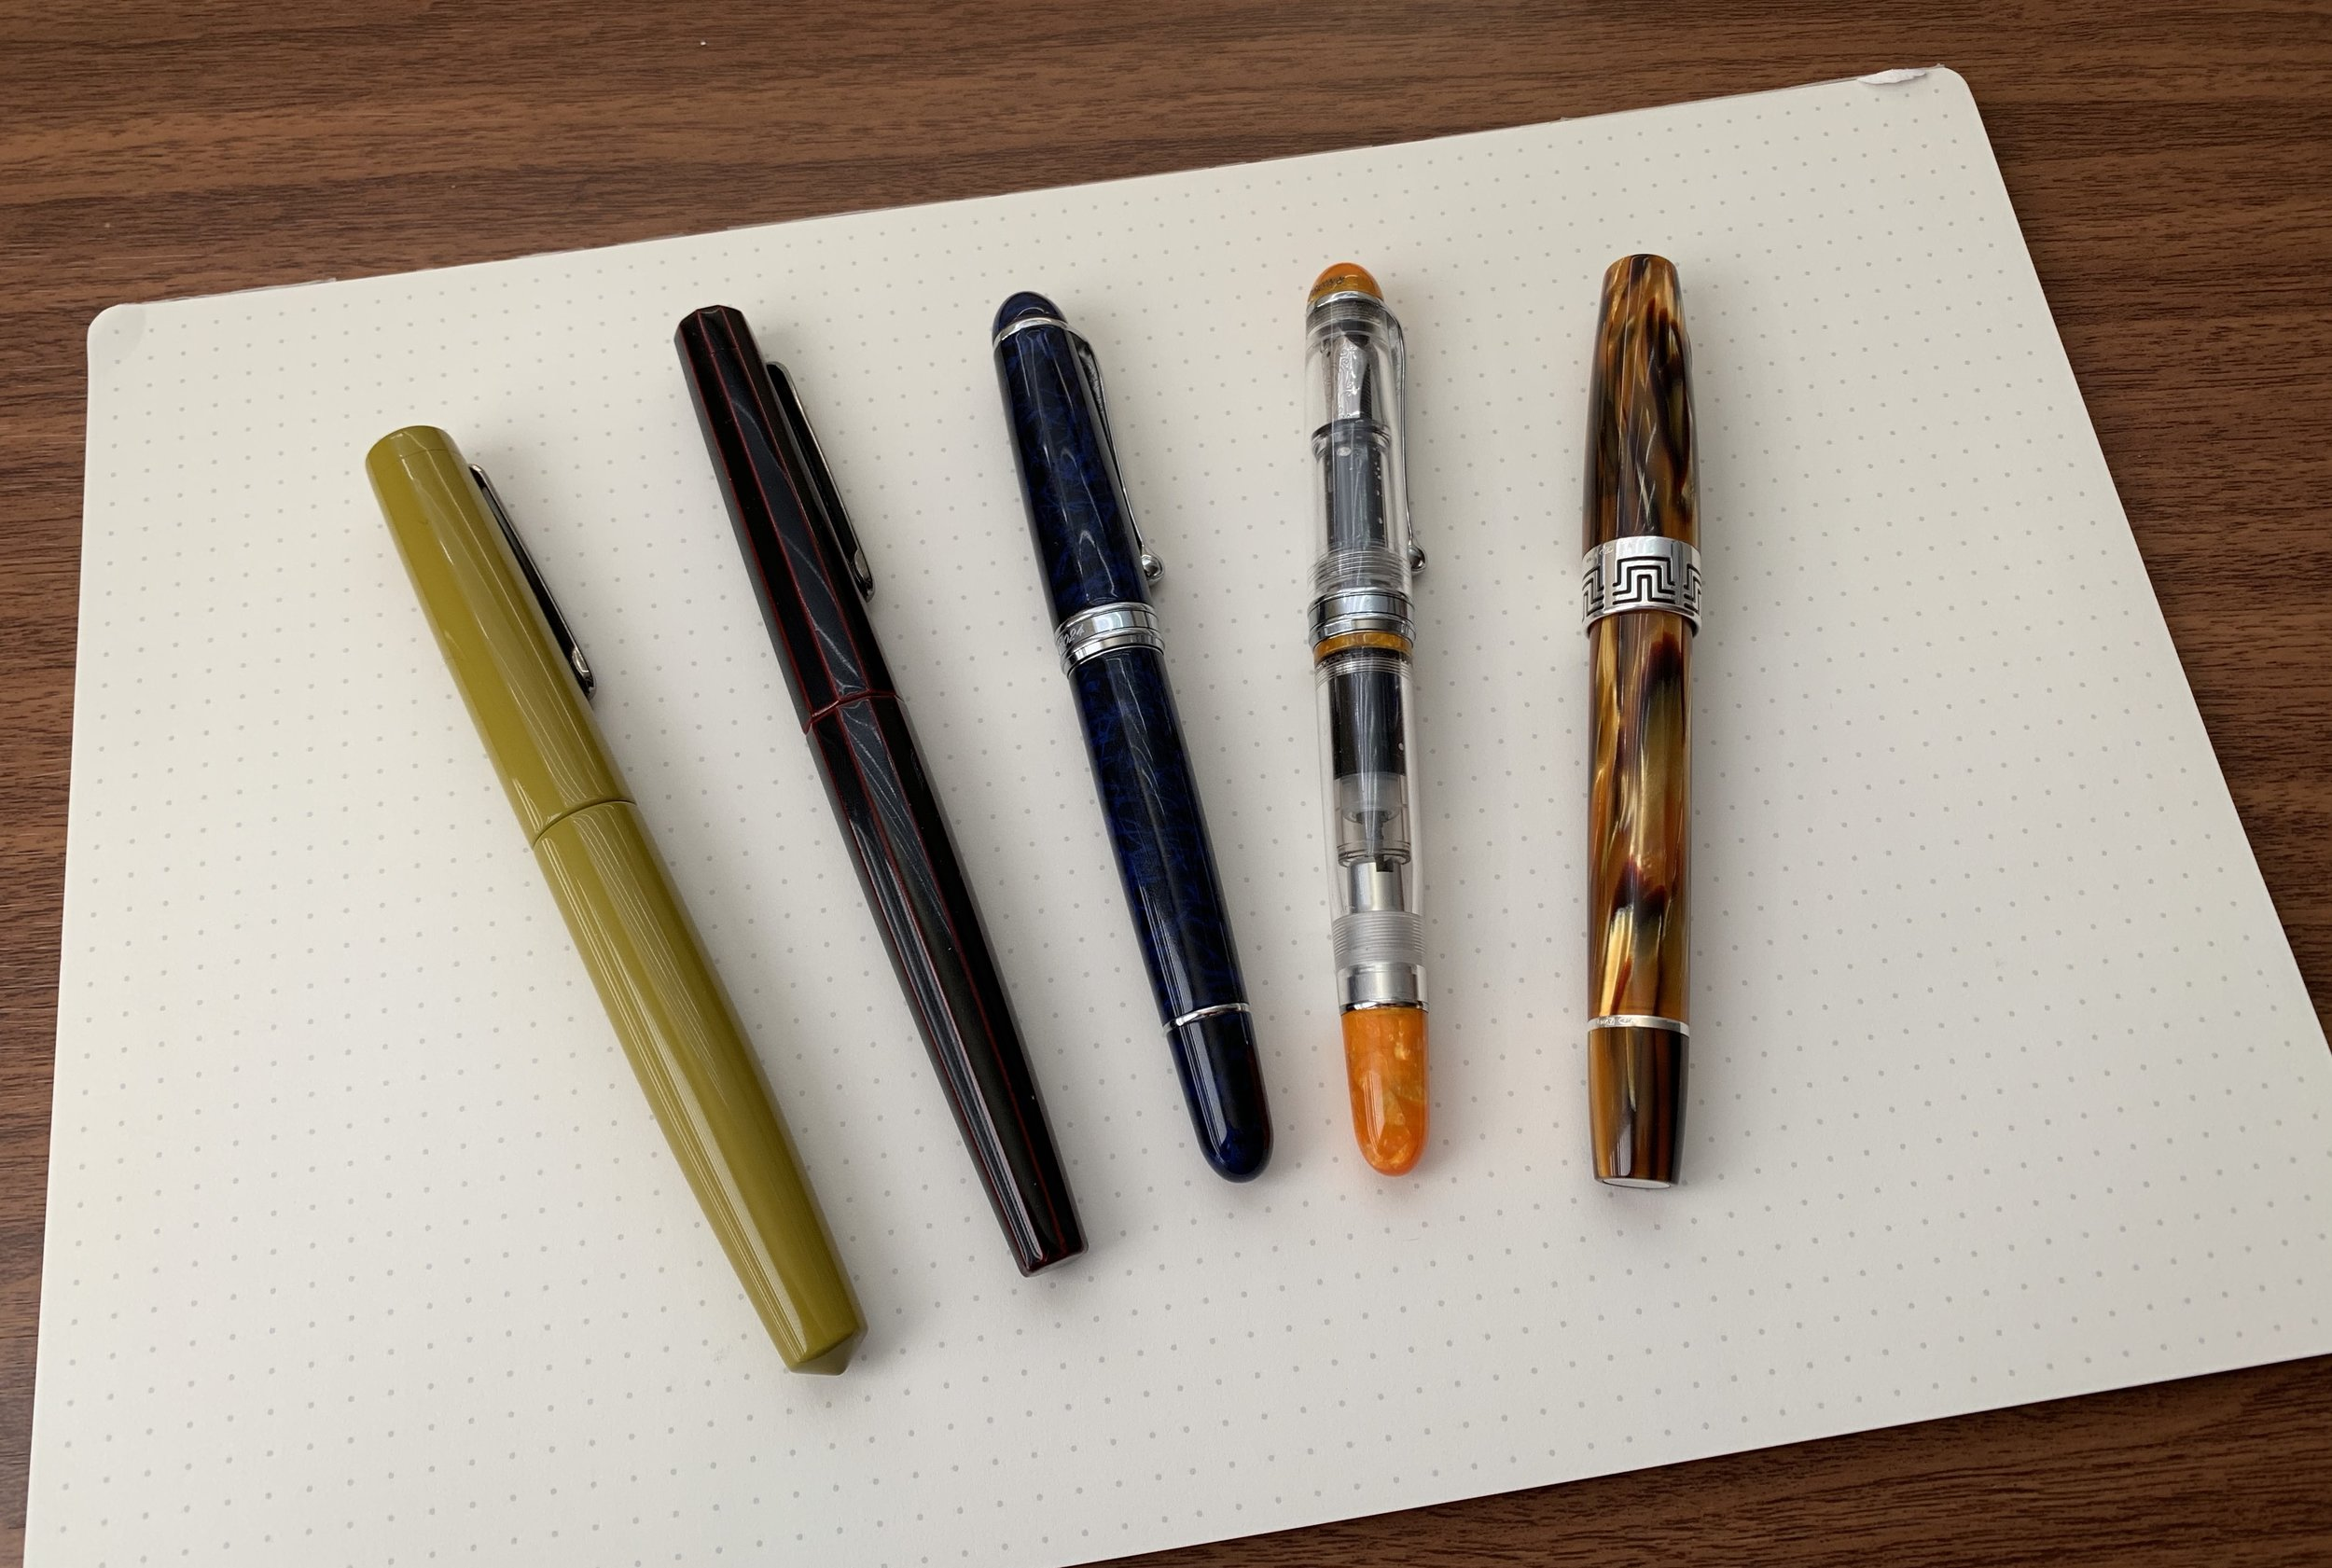 Most of my year-end 2018 acquisitions: 12+ pens out the door, five in.